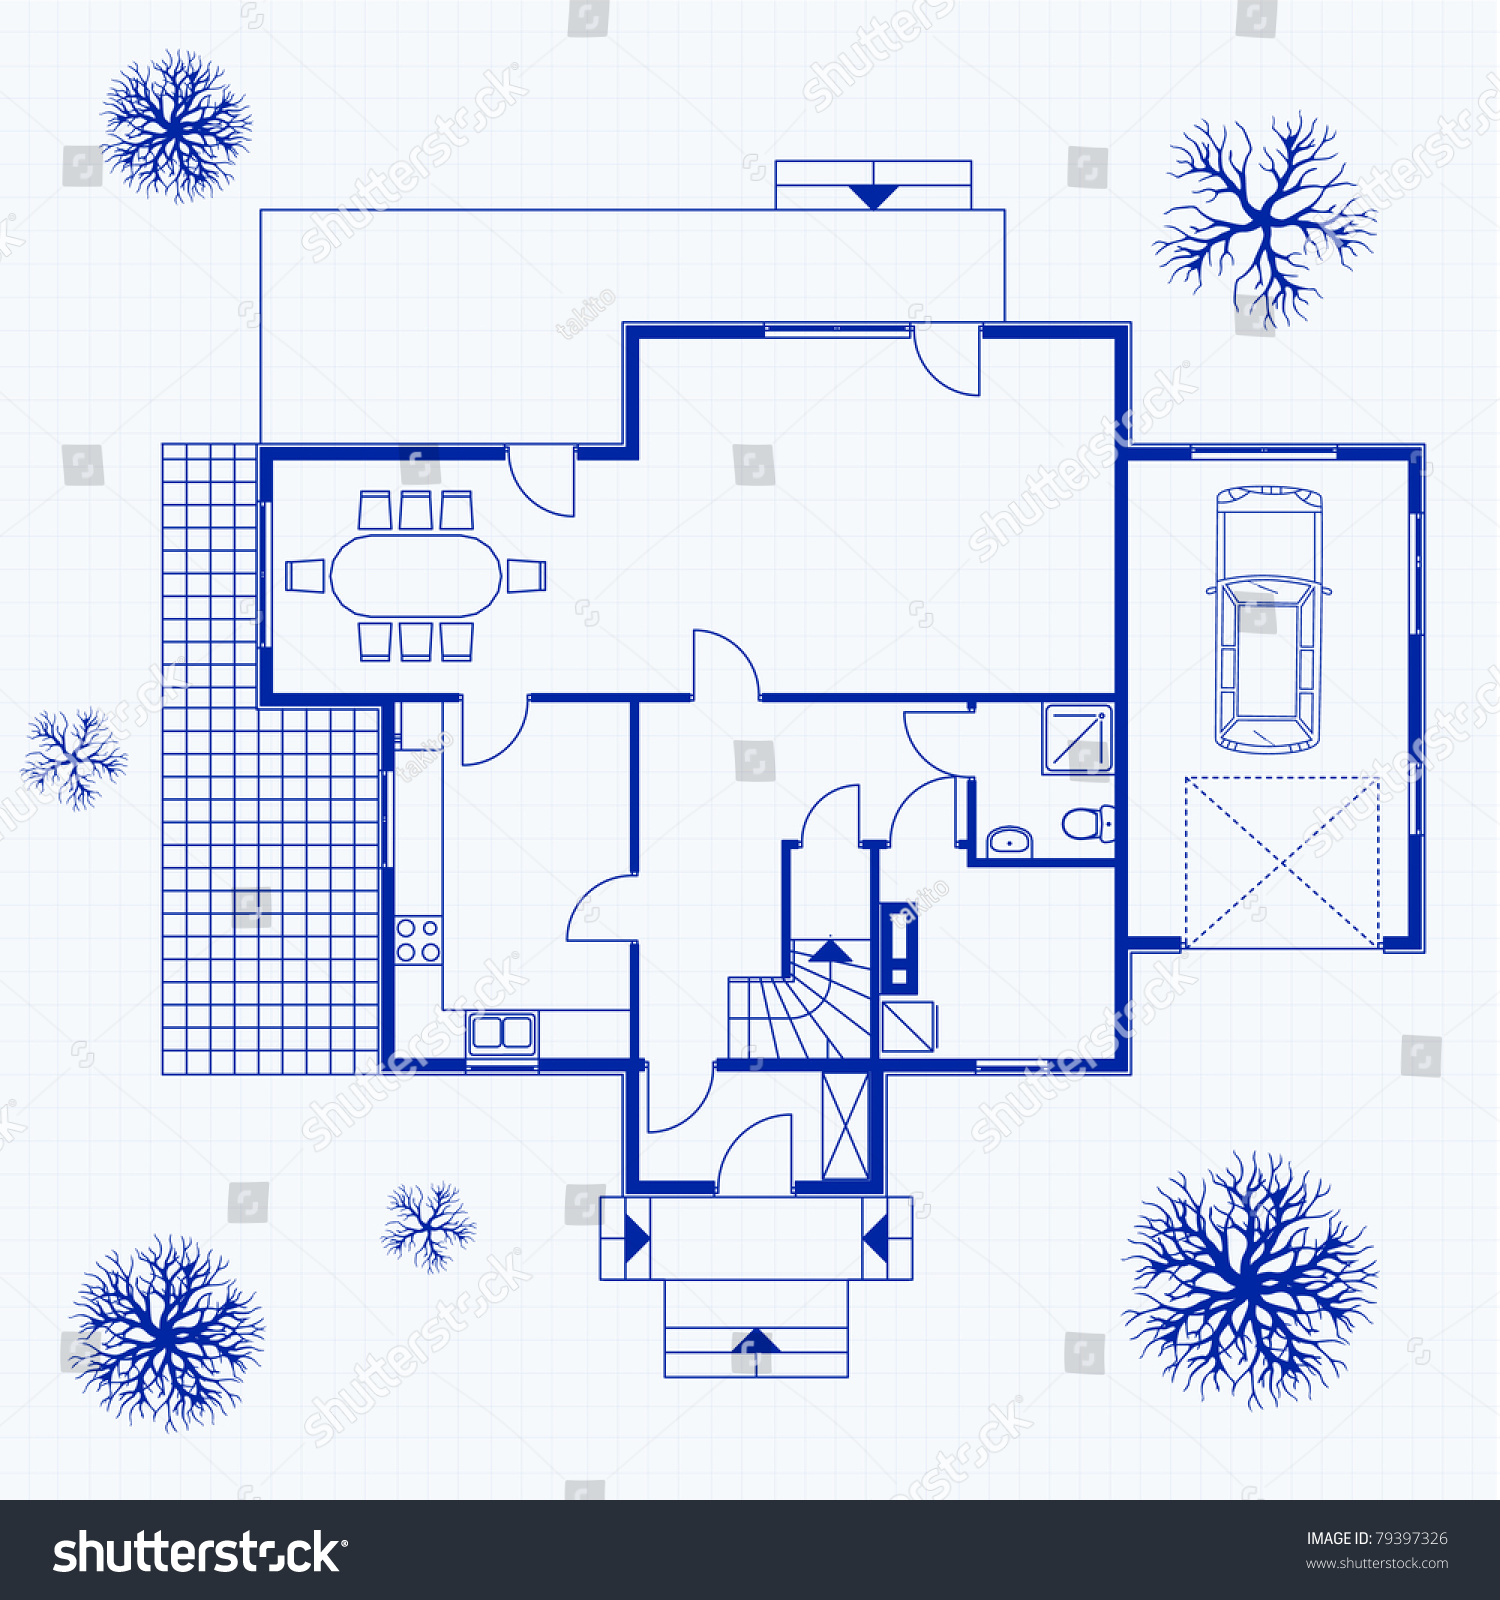 Tree House Floor Plan House Blueprint Exterior Interior Vector Illustration